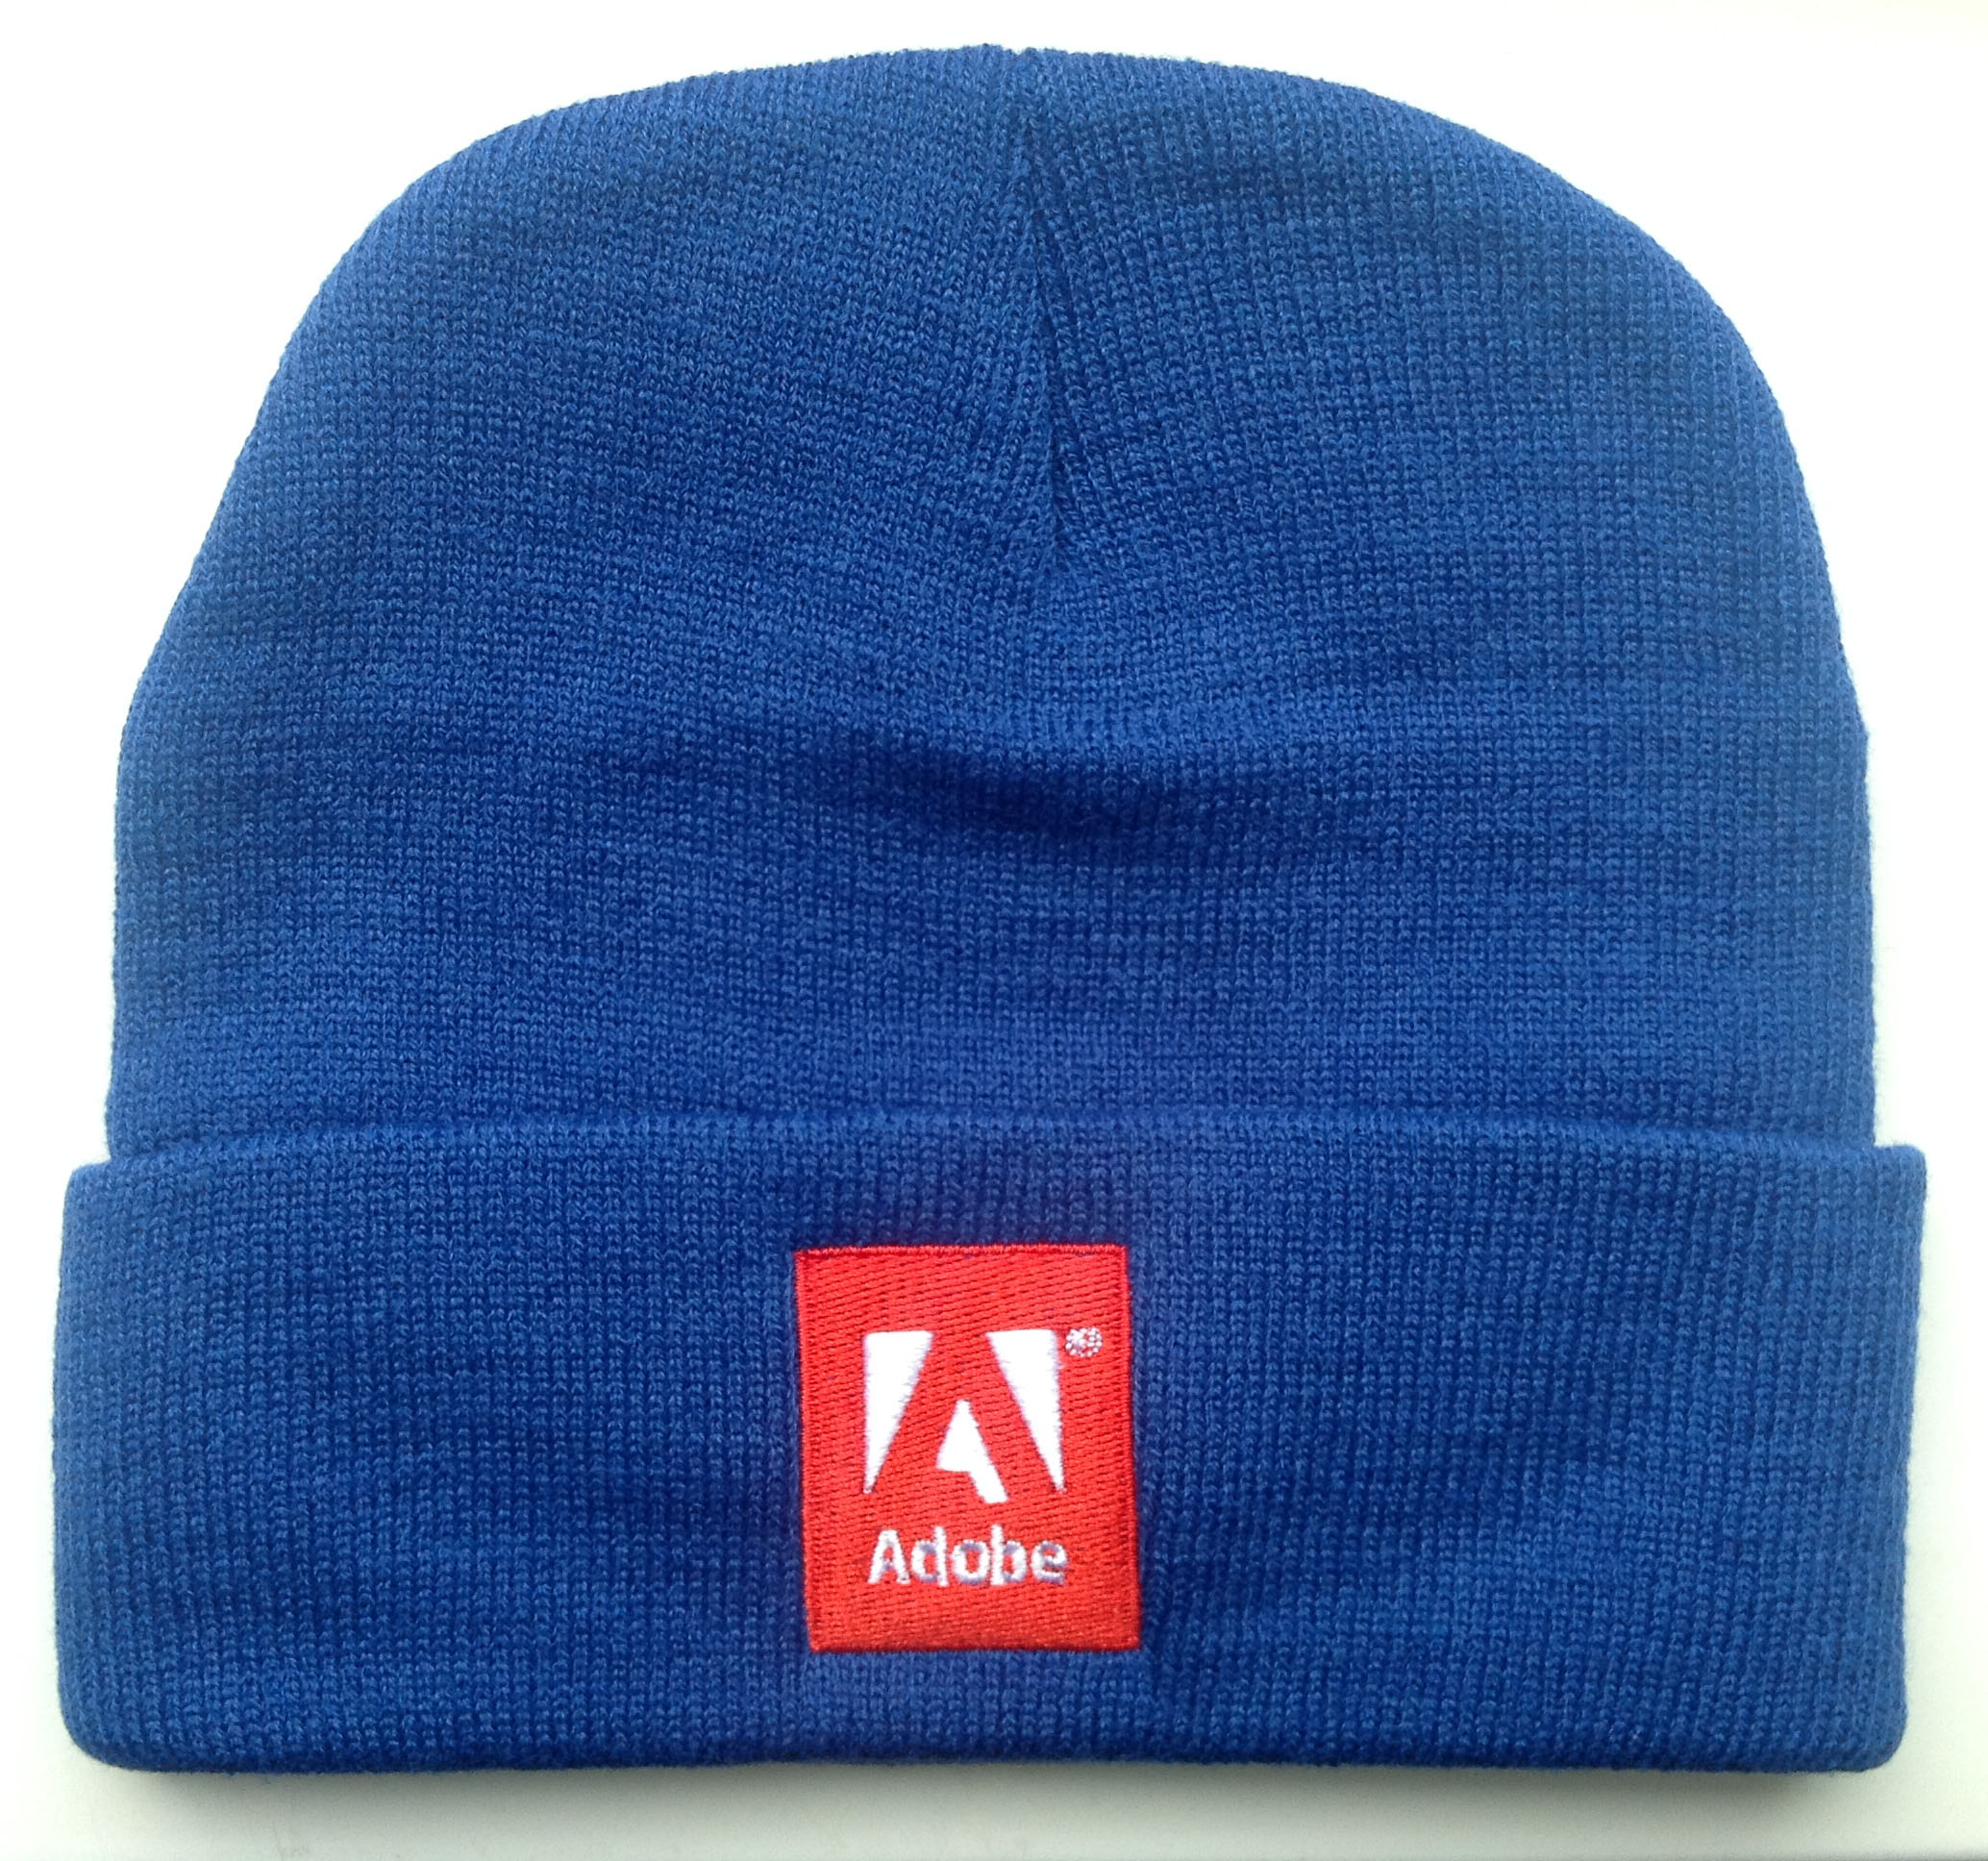 A blue beanie with Adobe logo